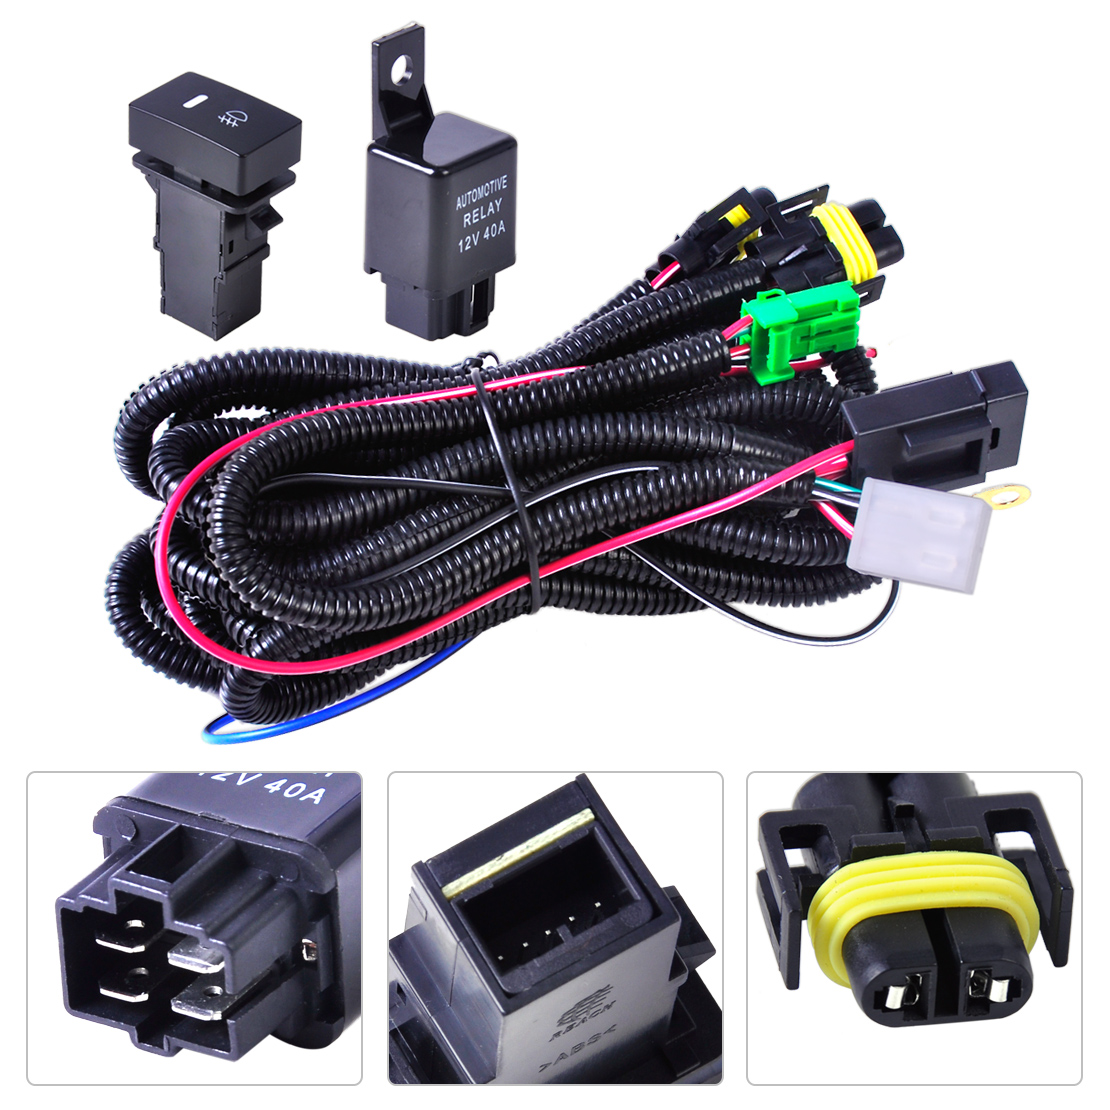 [SCHEMATICS_49CH]  DWCX Wiring Harness Sockets Wire+Switch for H11 Fog Light Lamp for Ford  Focus 2008 2014 Acura TSX 11 14 Nissan Cube 2009 2015|fog light switch|fog  lamp switchnissan switch - AliExpress | 2007 Wrx Fog Light Wiring Harness |  | www.aliexpress.com